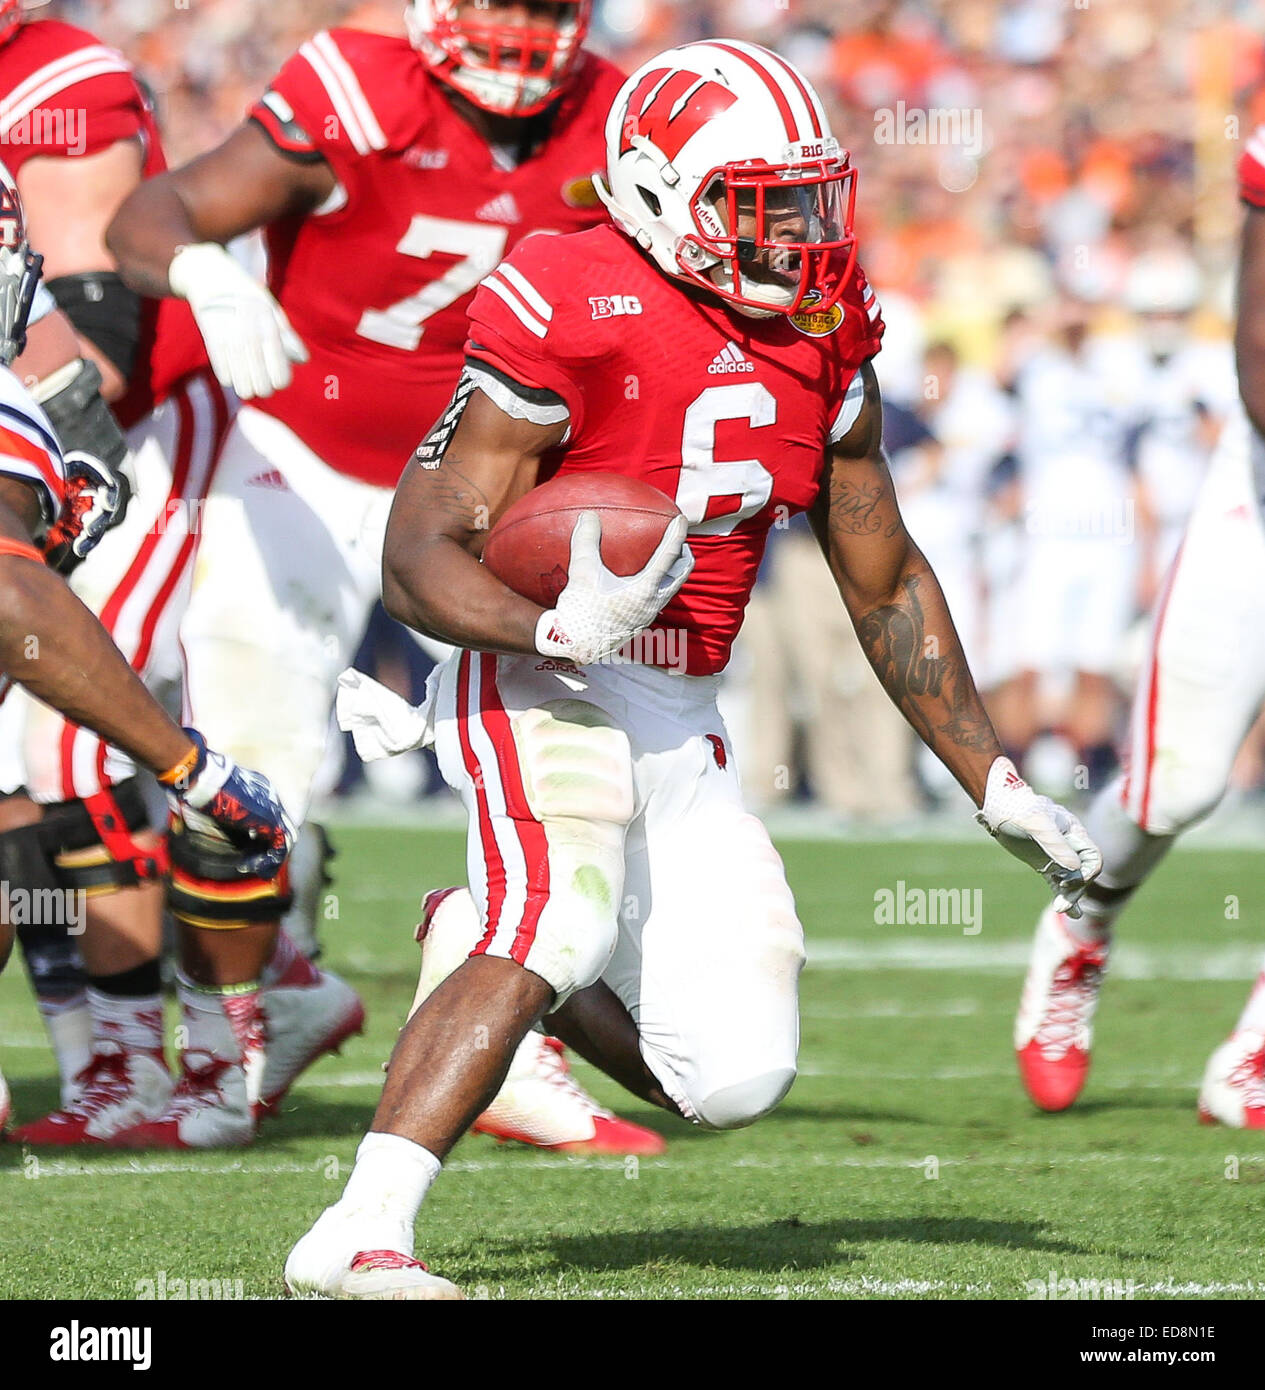 Tampa, FL, USA. 1st Jan, 2015. Wisconsin's Corey Clement #6 is into the open field during a run at the Outback - Stock Image